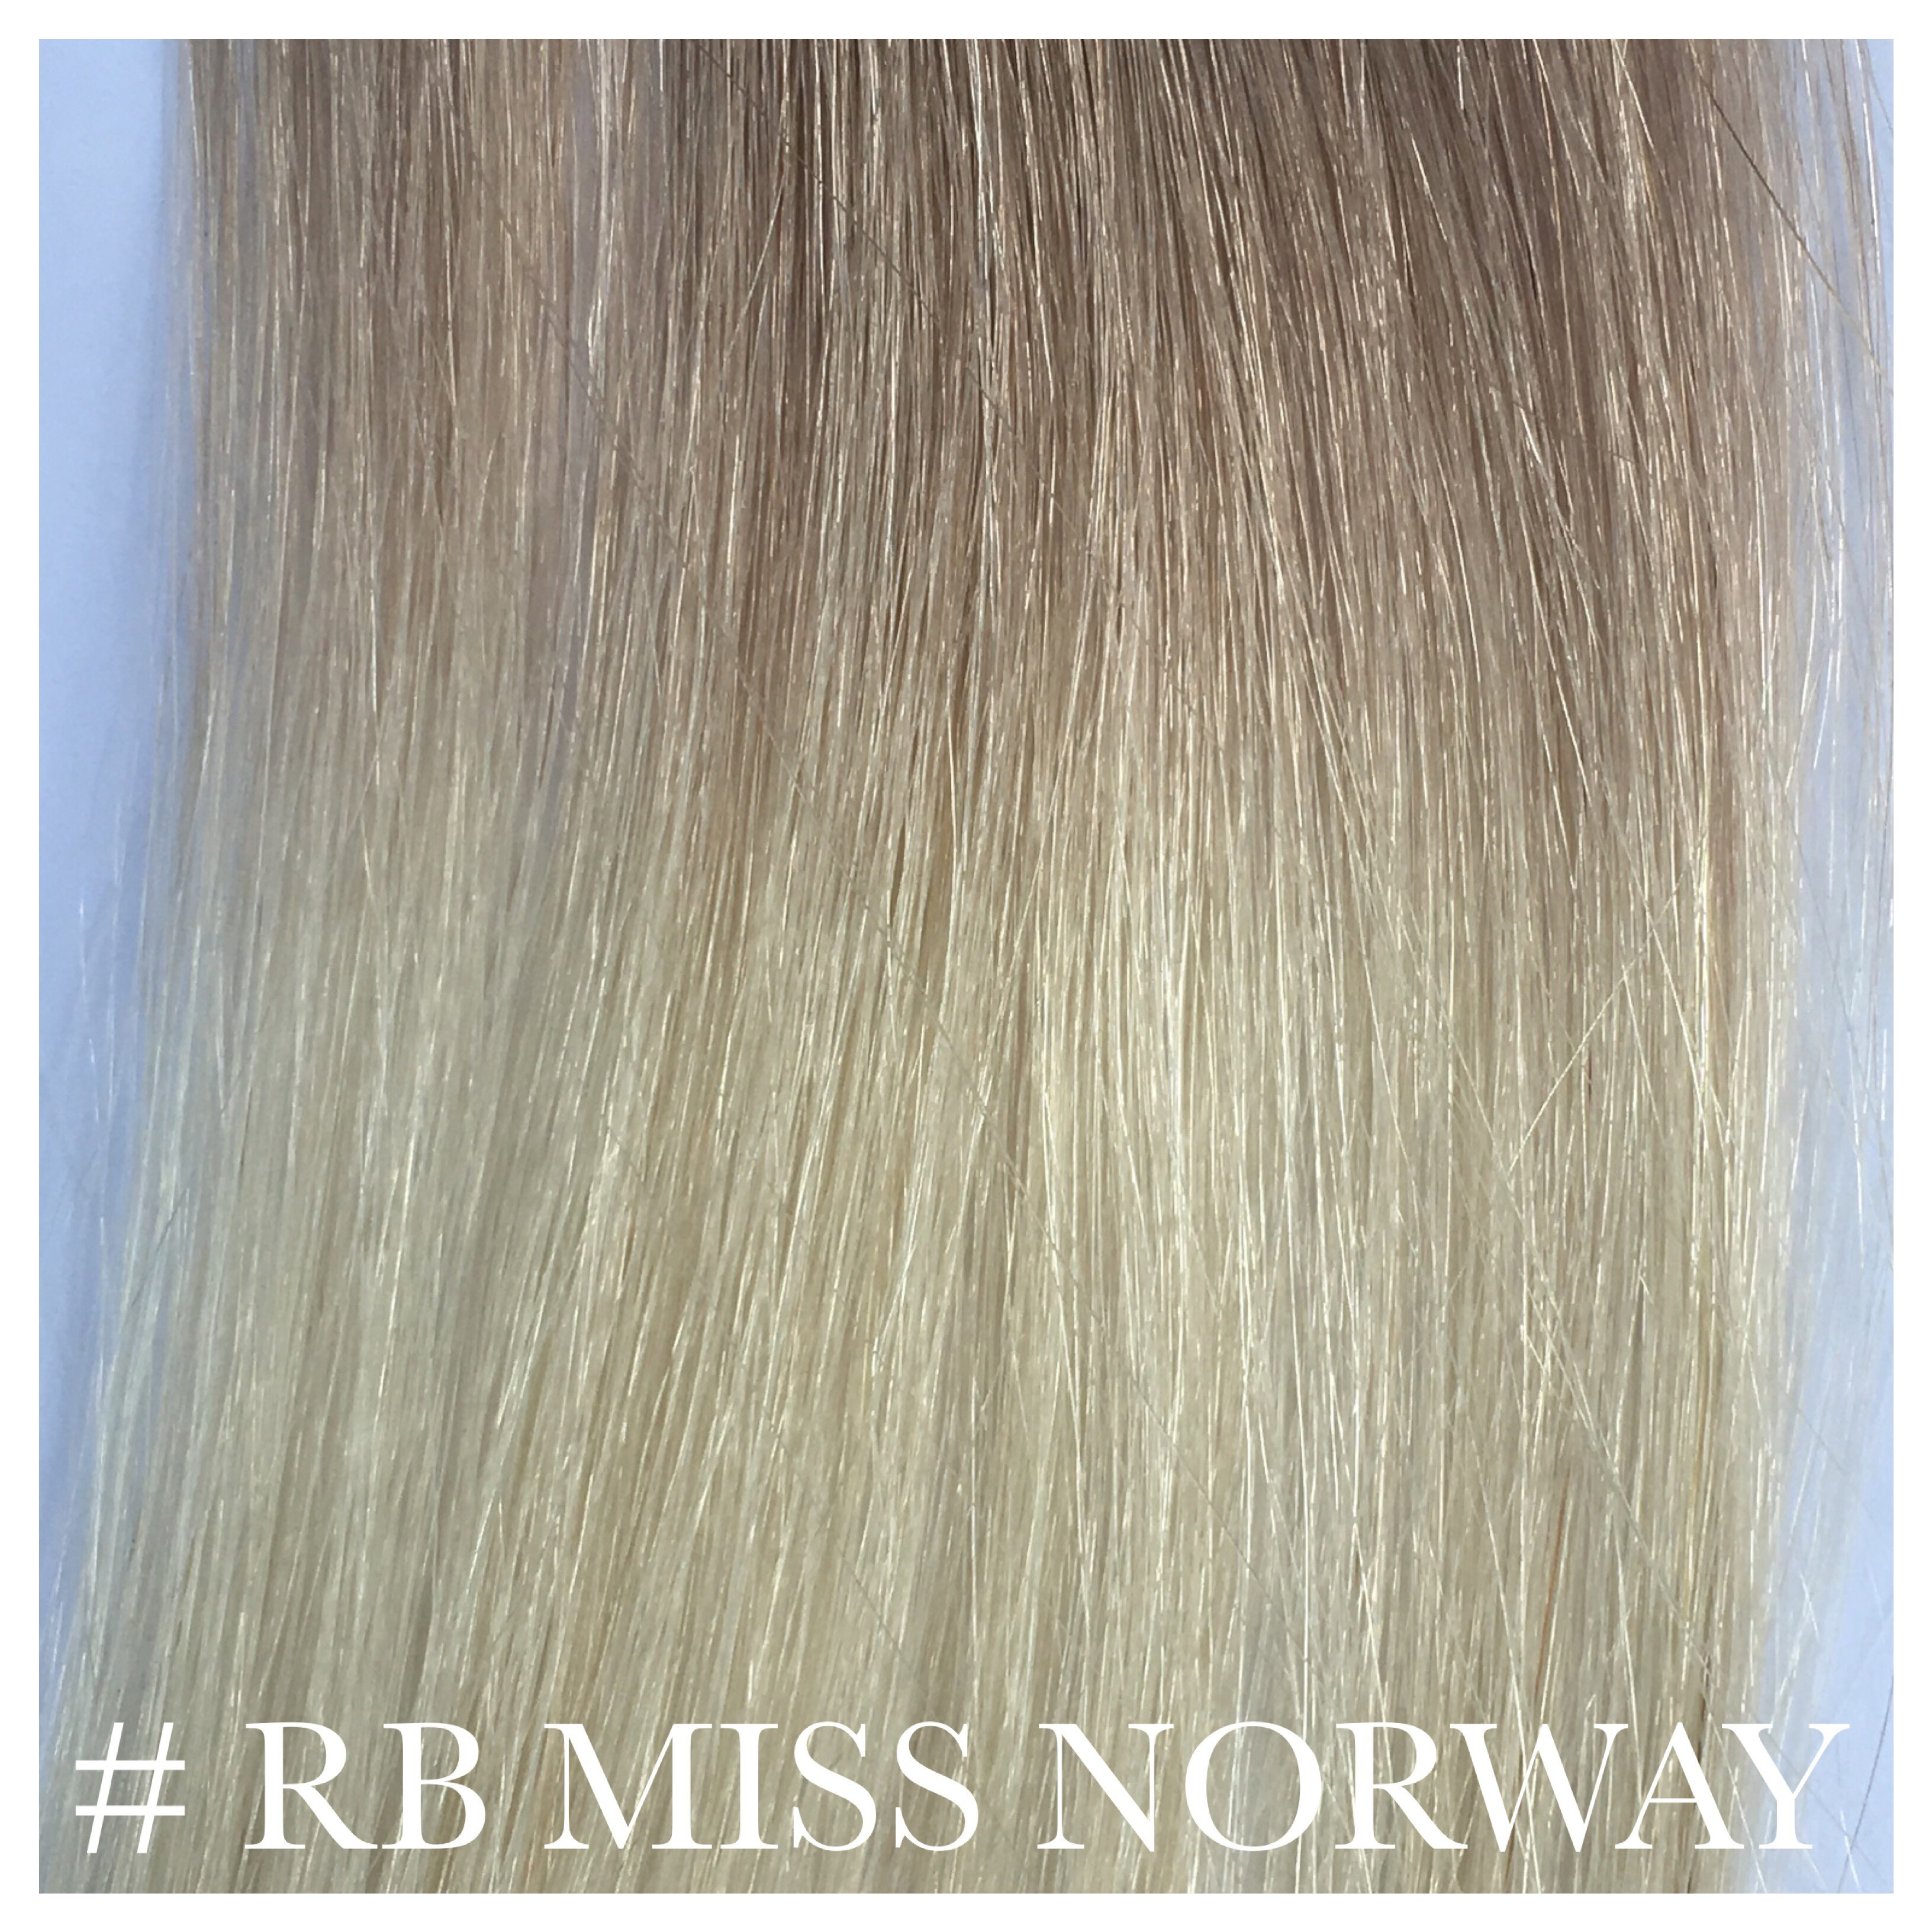 #RB Miss Norway